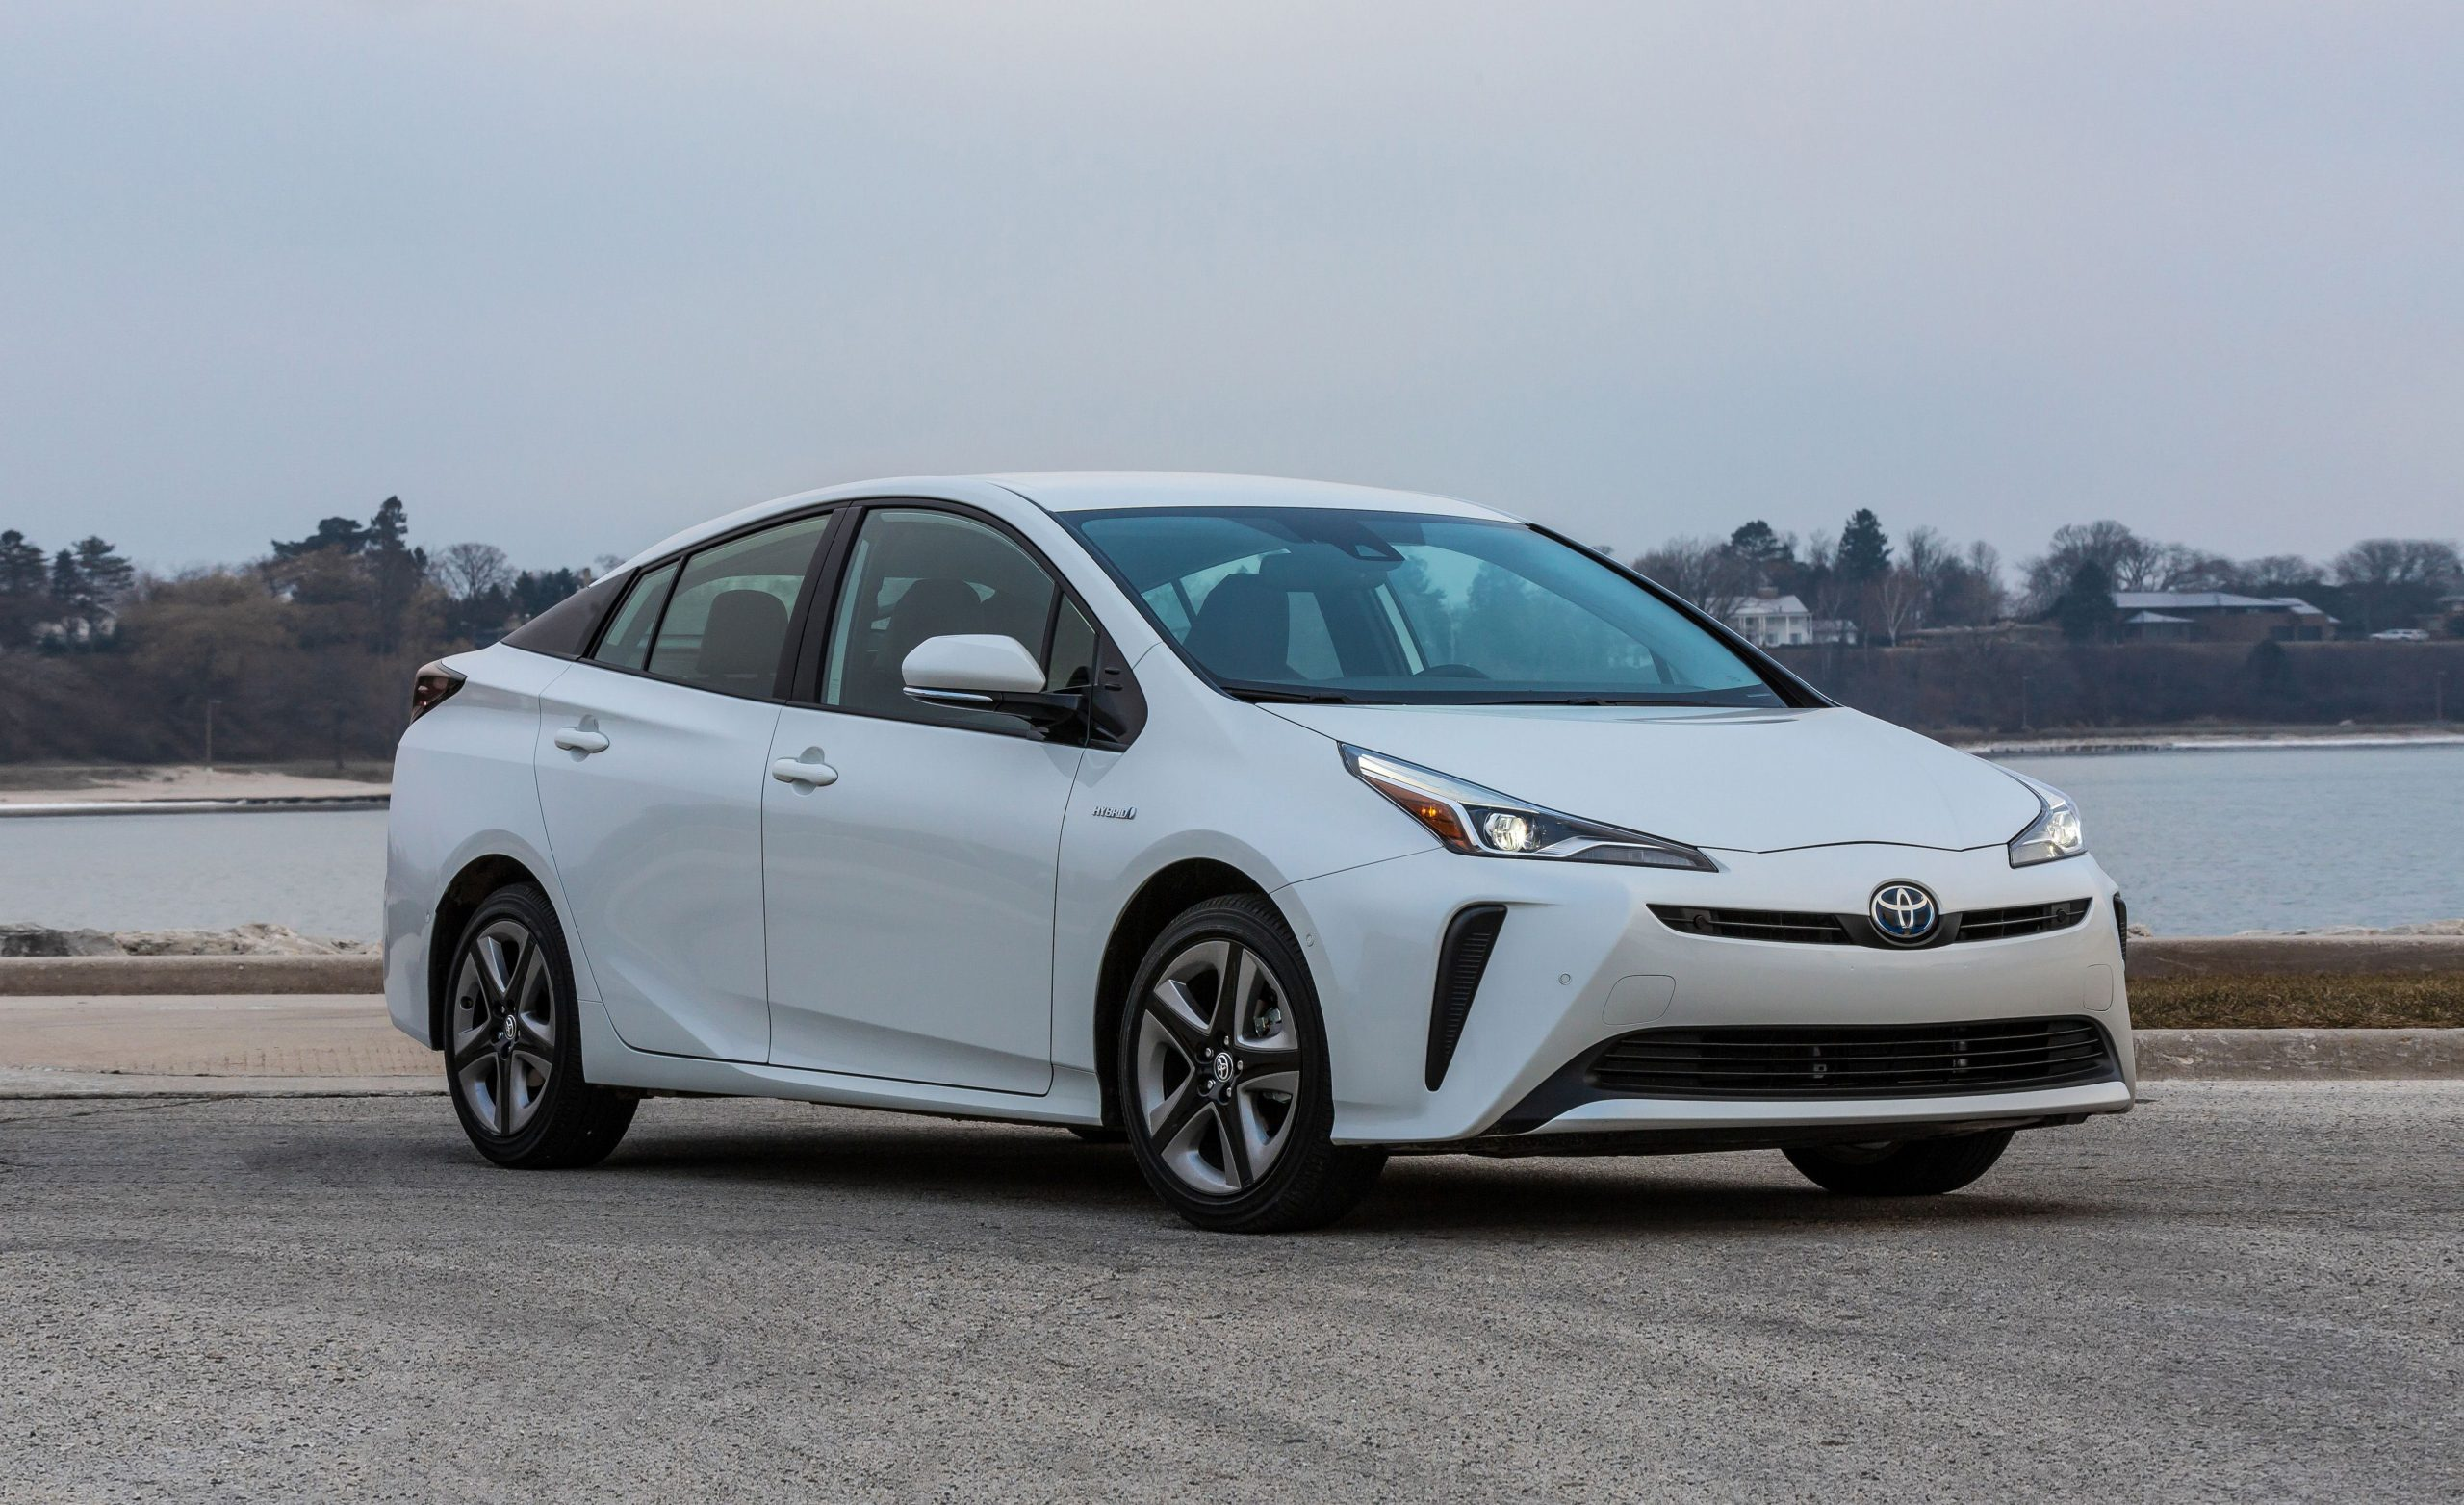 What are Hybrid Cars?